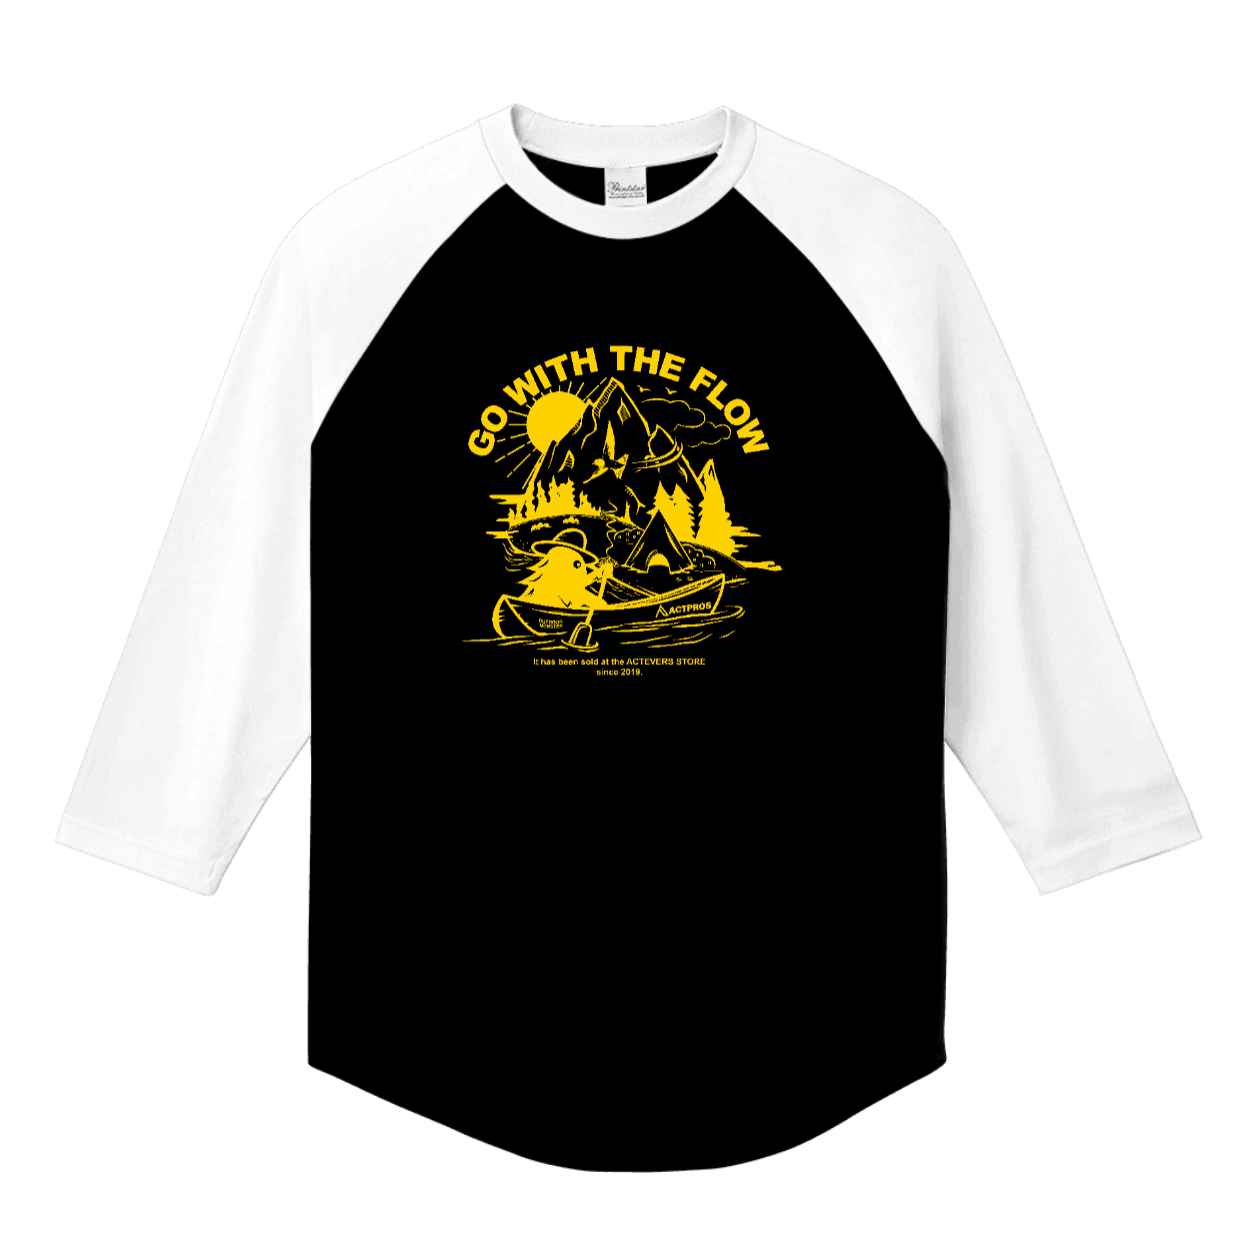 ACTPROS × OUTDOOR MONSTER GWTF 5.6oz ヘビーウェイト ラグラン ハーフスリーブ TEE【3colors × 6logo colors】